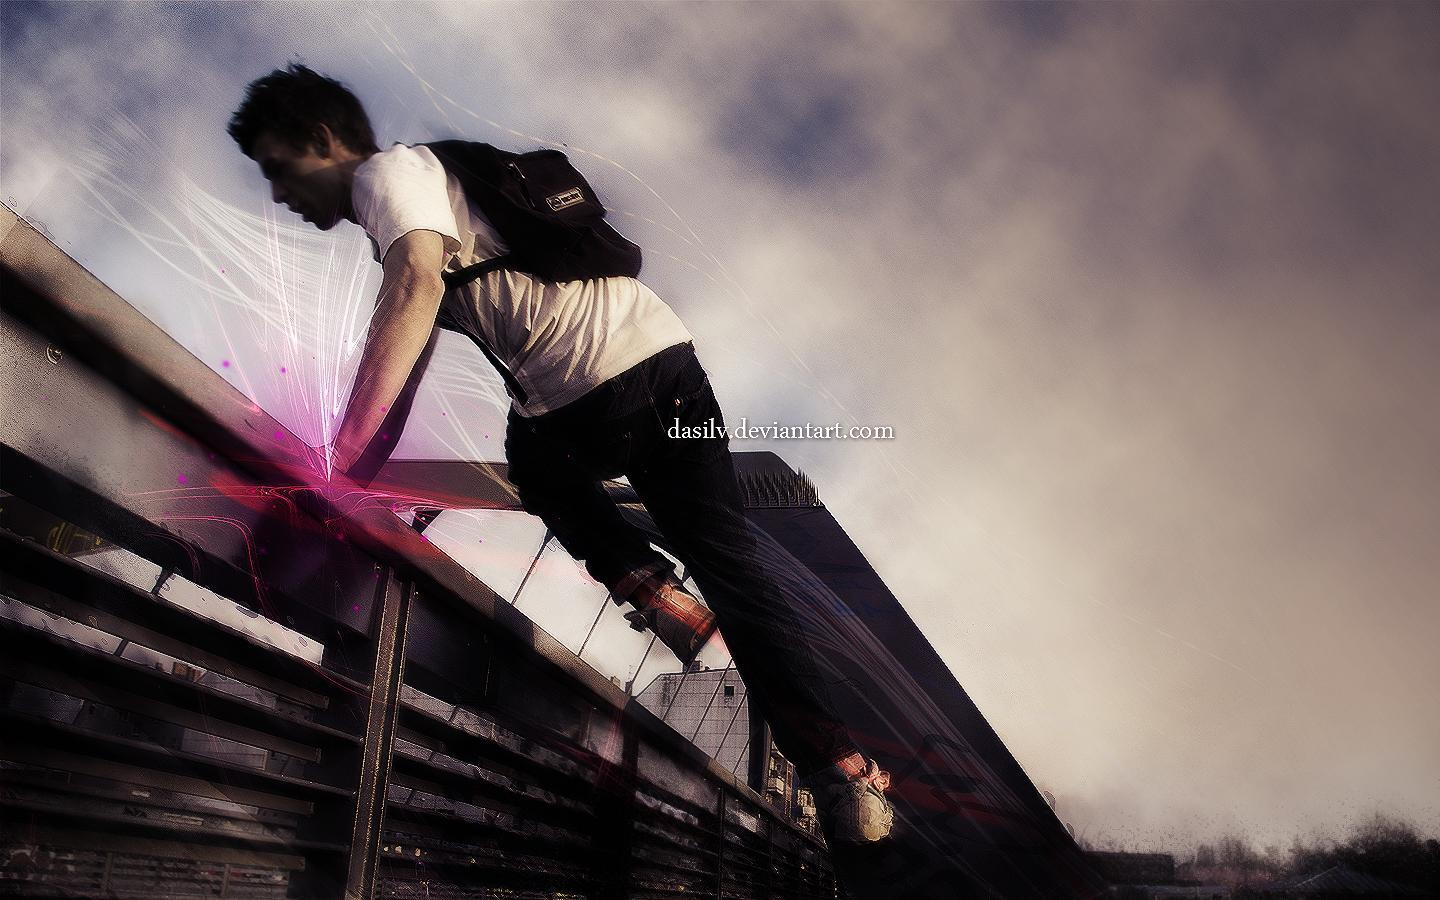 Parkour Wallpapers – 1440×900 High Definition Wallpaper, Backgrounds